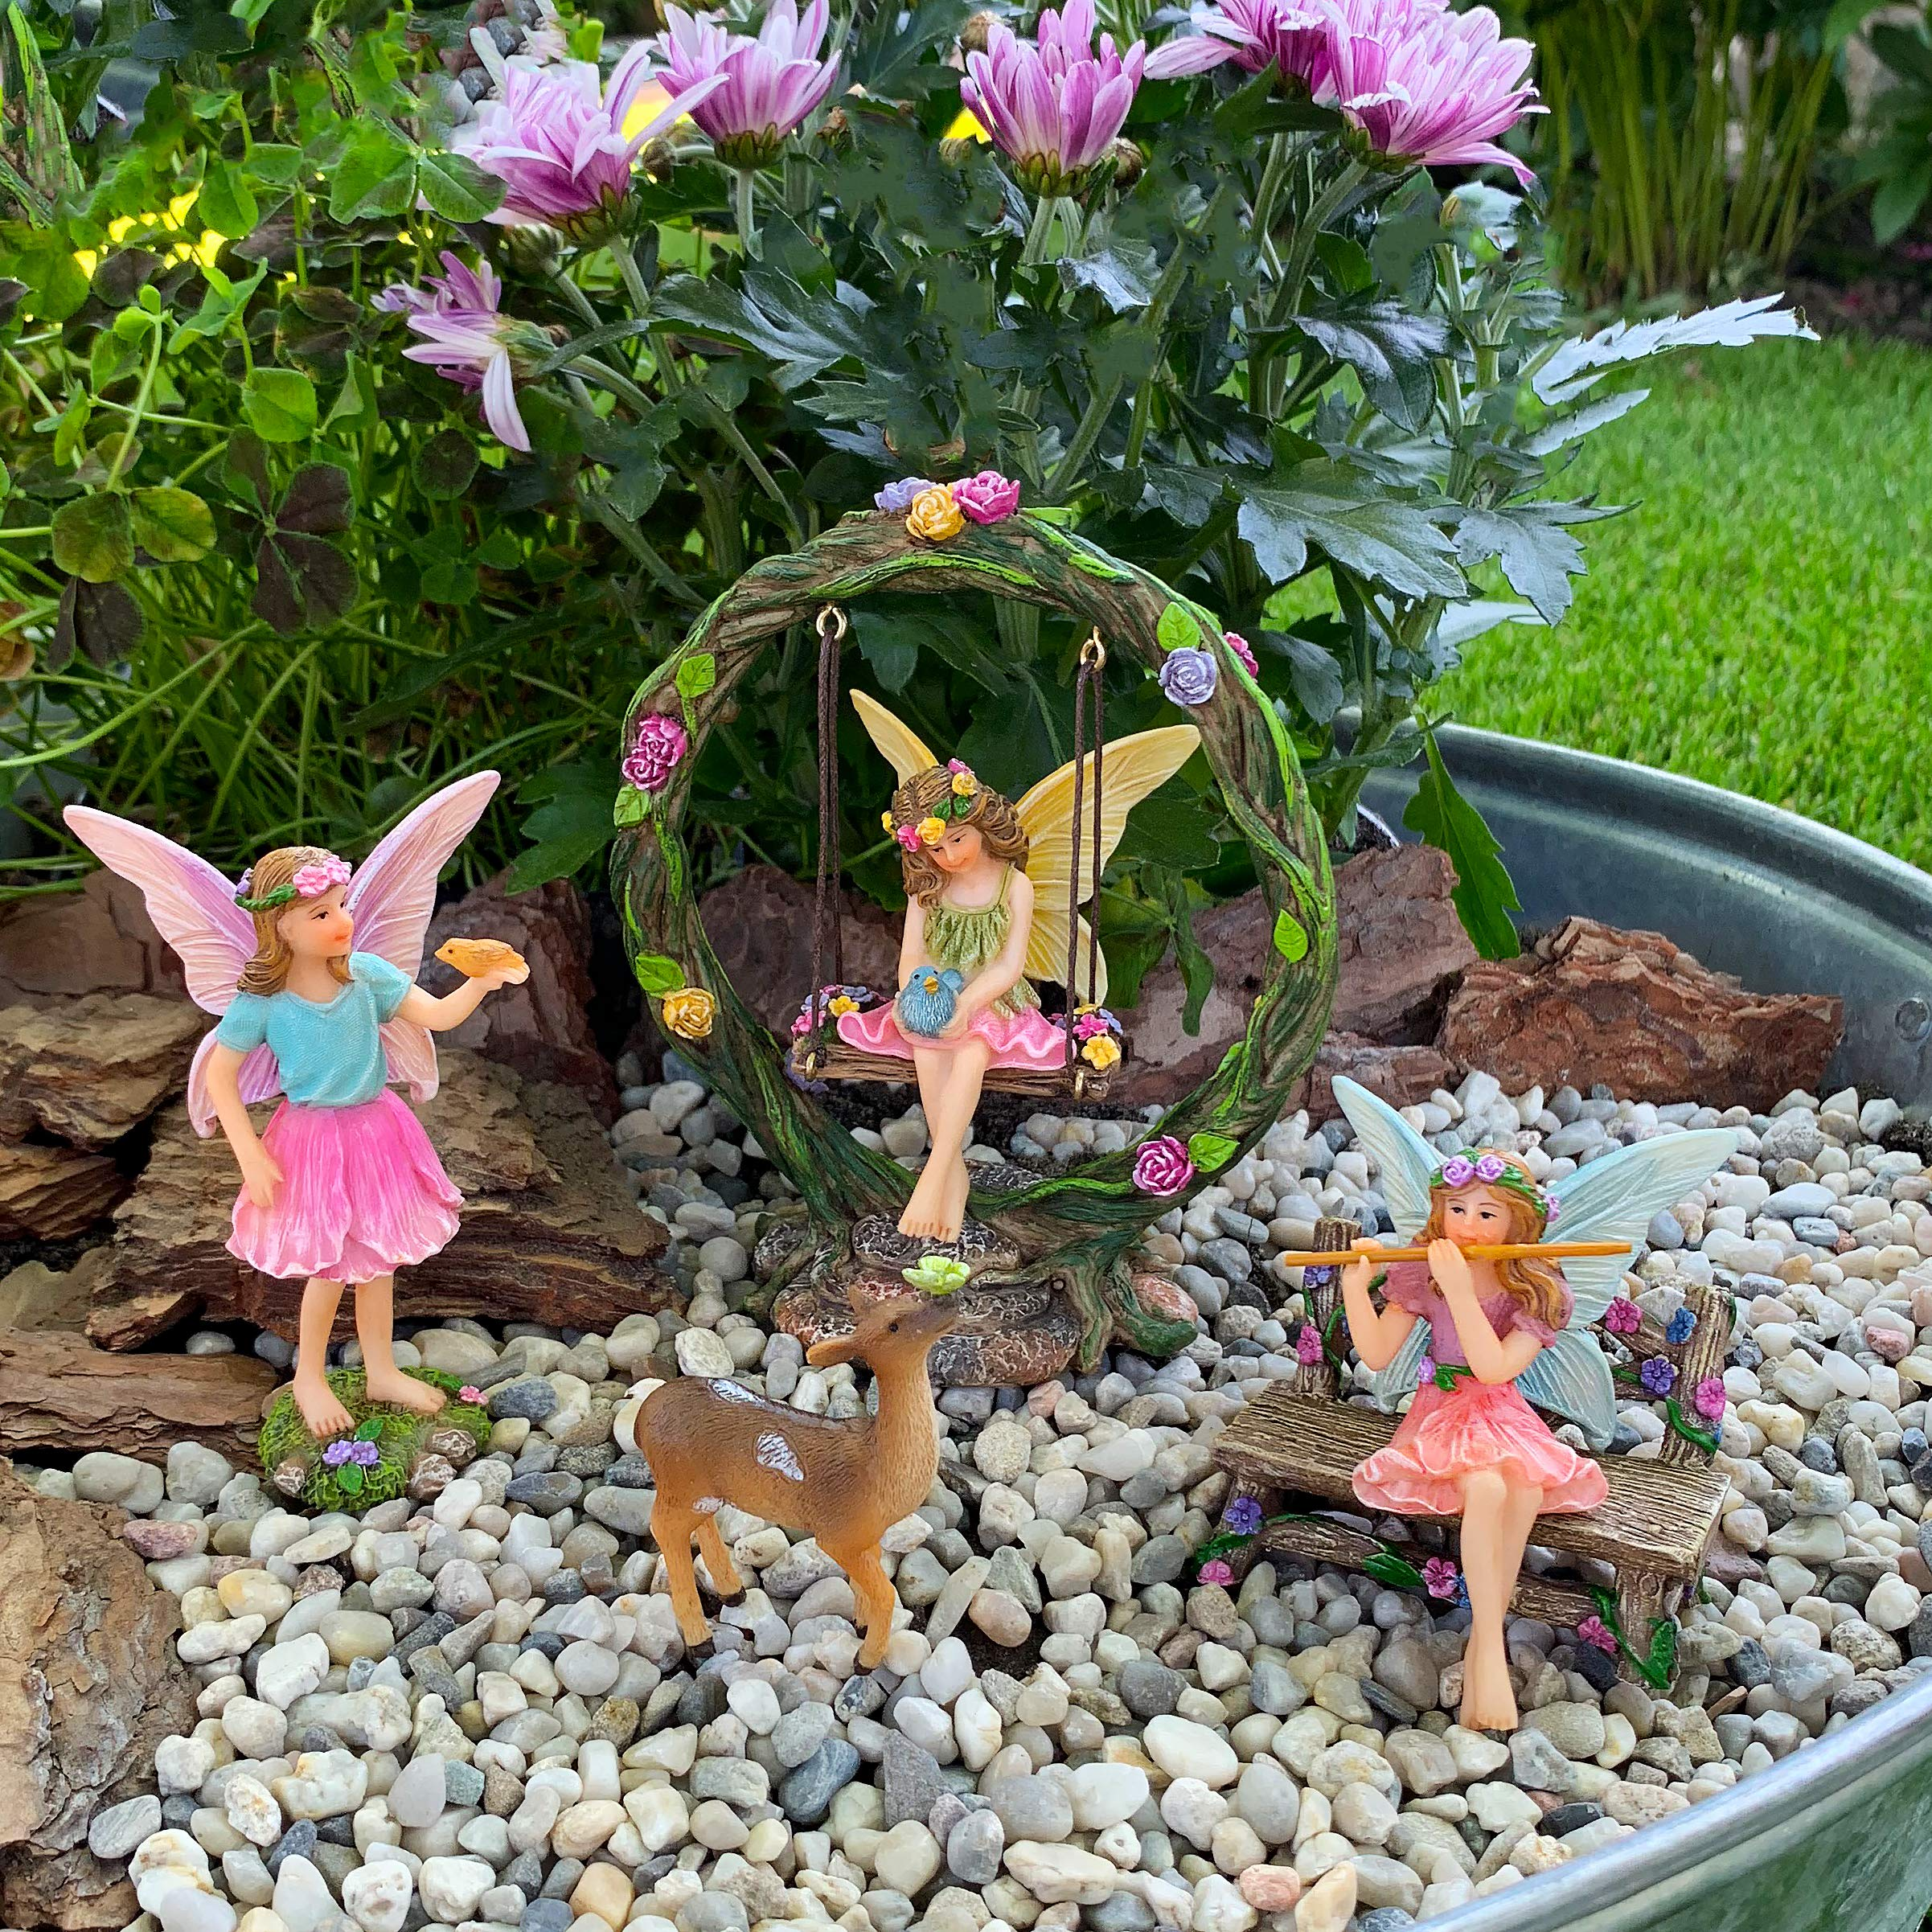 Mood Lab Fairy Garden Kit - Miniature Figurines with Accessories Swing Set of 6 pcs - Hand Painted for Outdoor or House Decor by Mood Lab (Image #4)